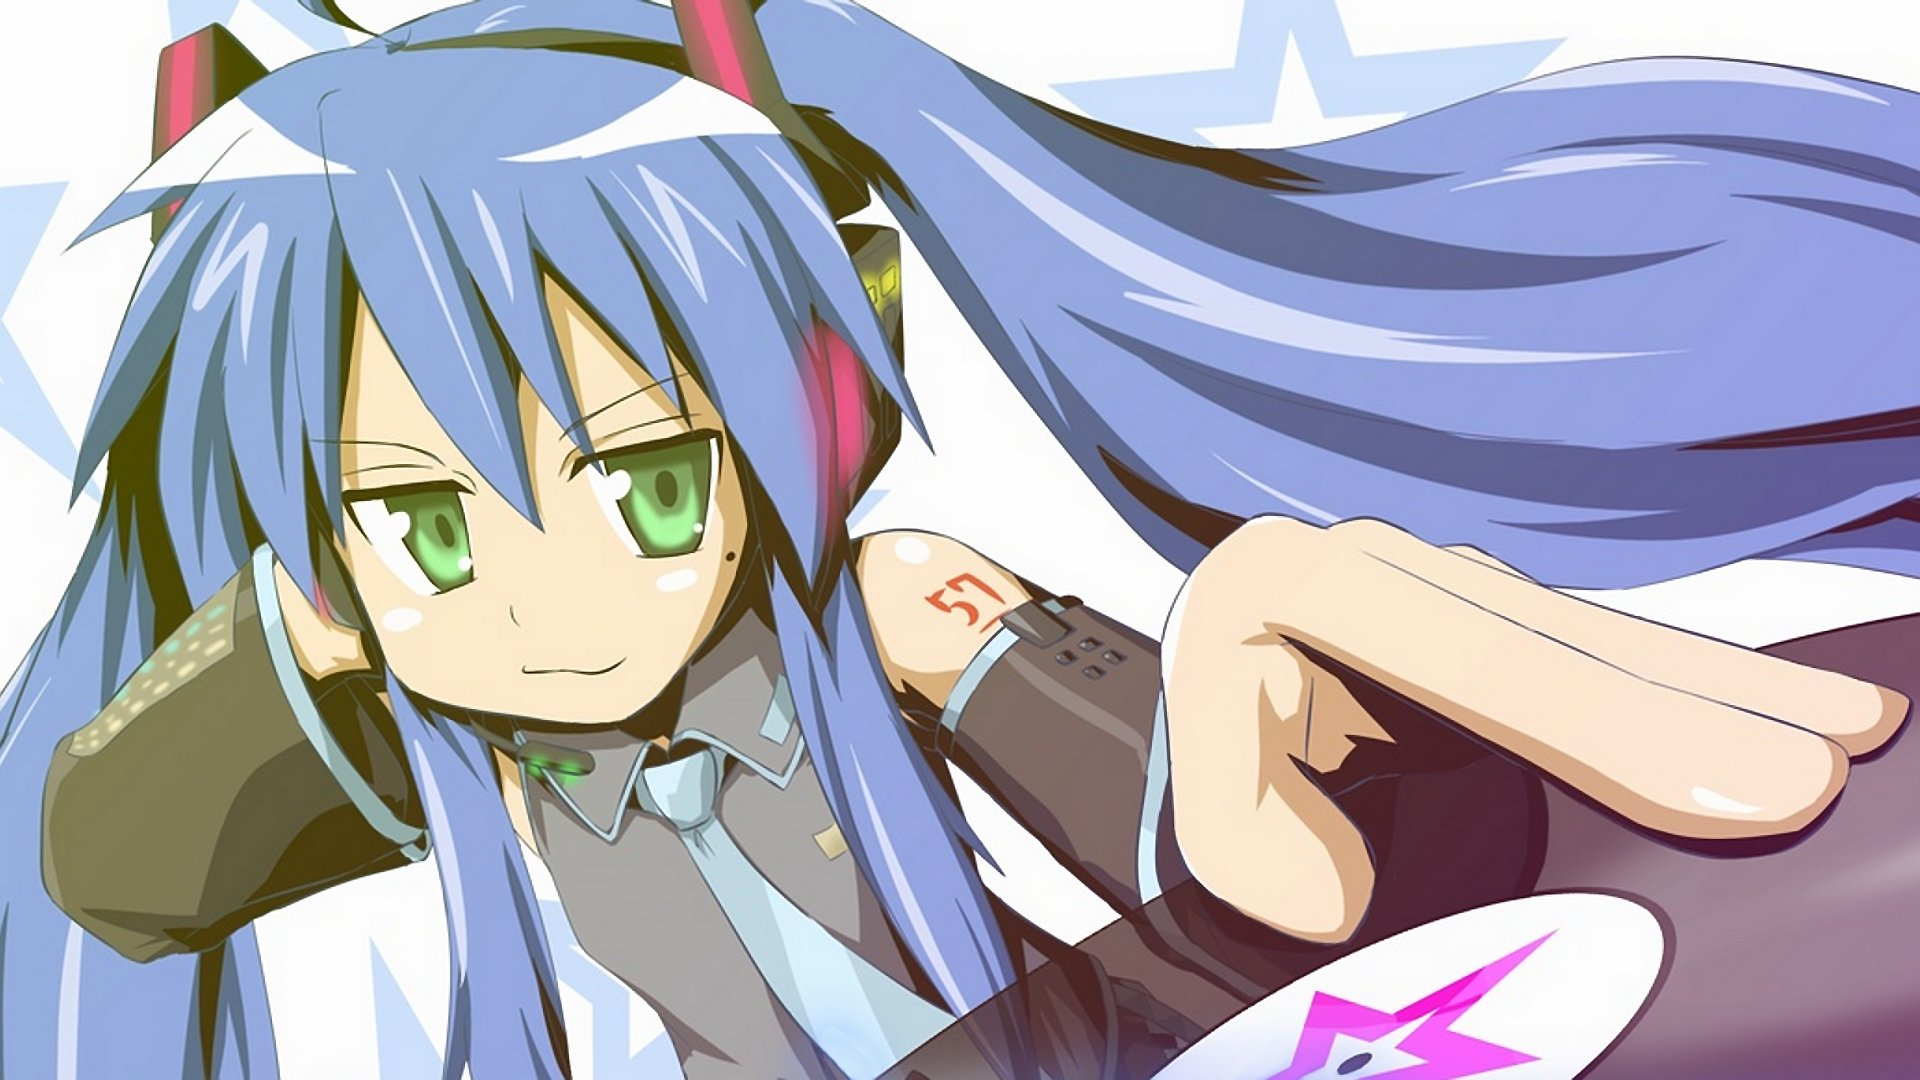 Download full hd 1920x1080 Konata Izumi computer wallpaper ID:214390 for free